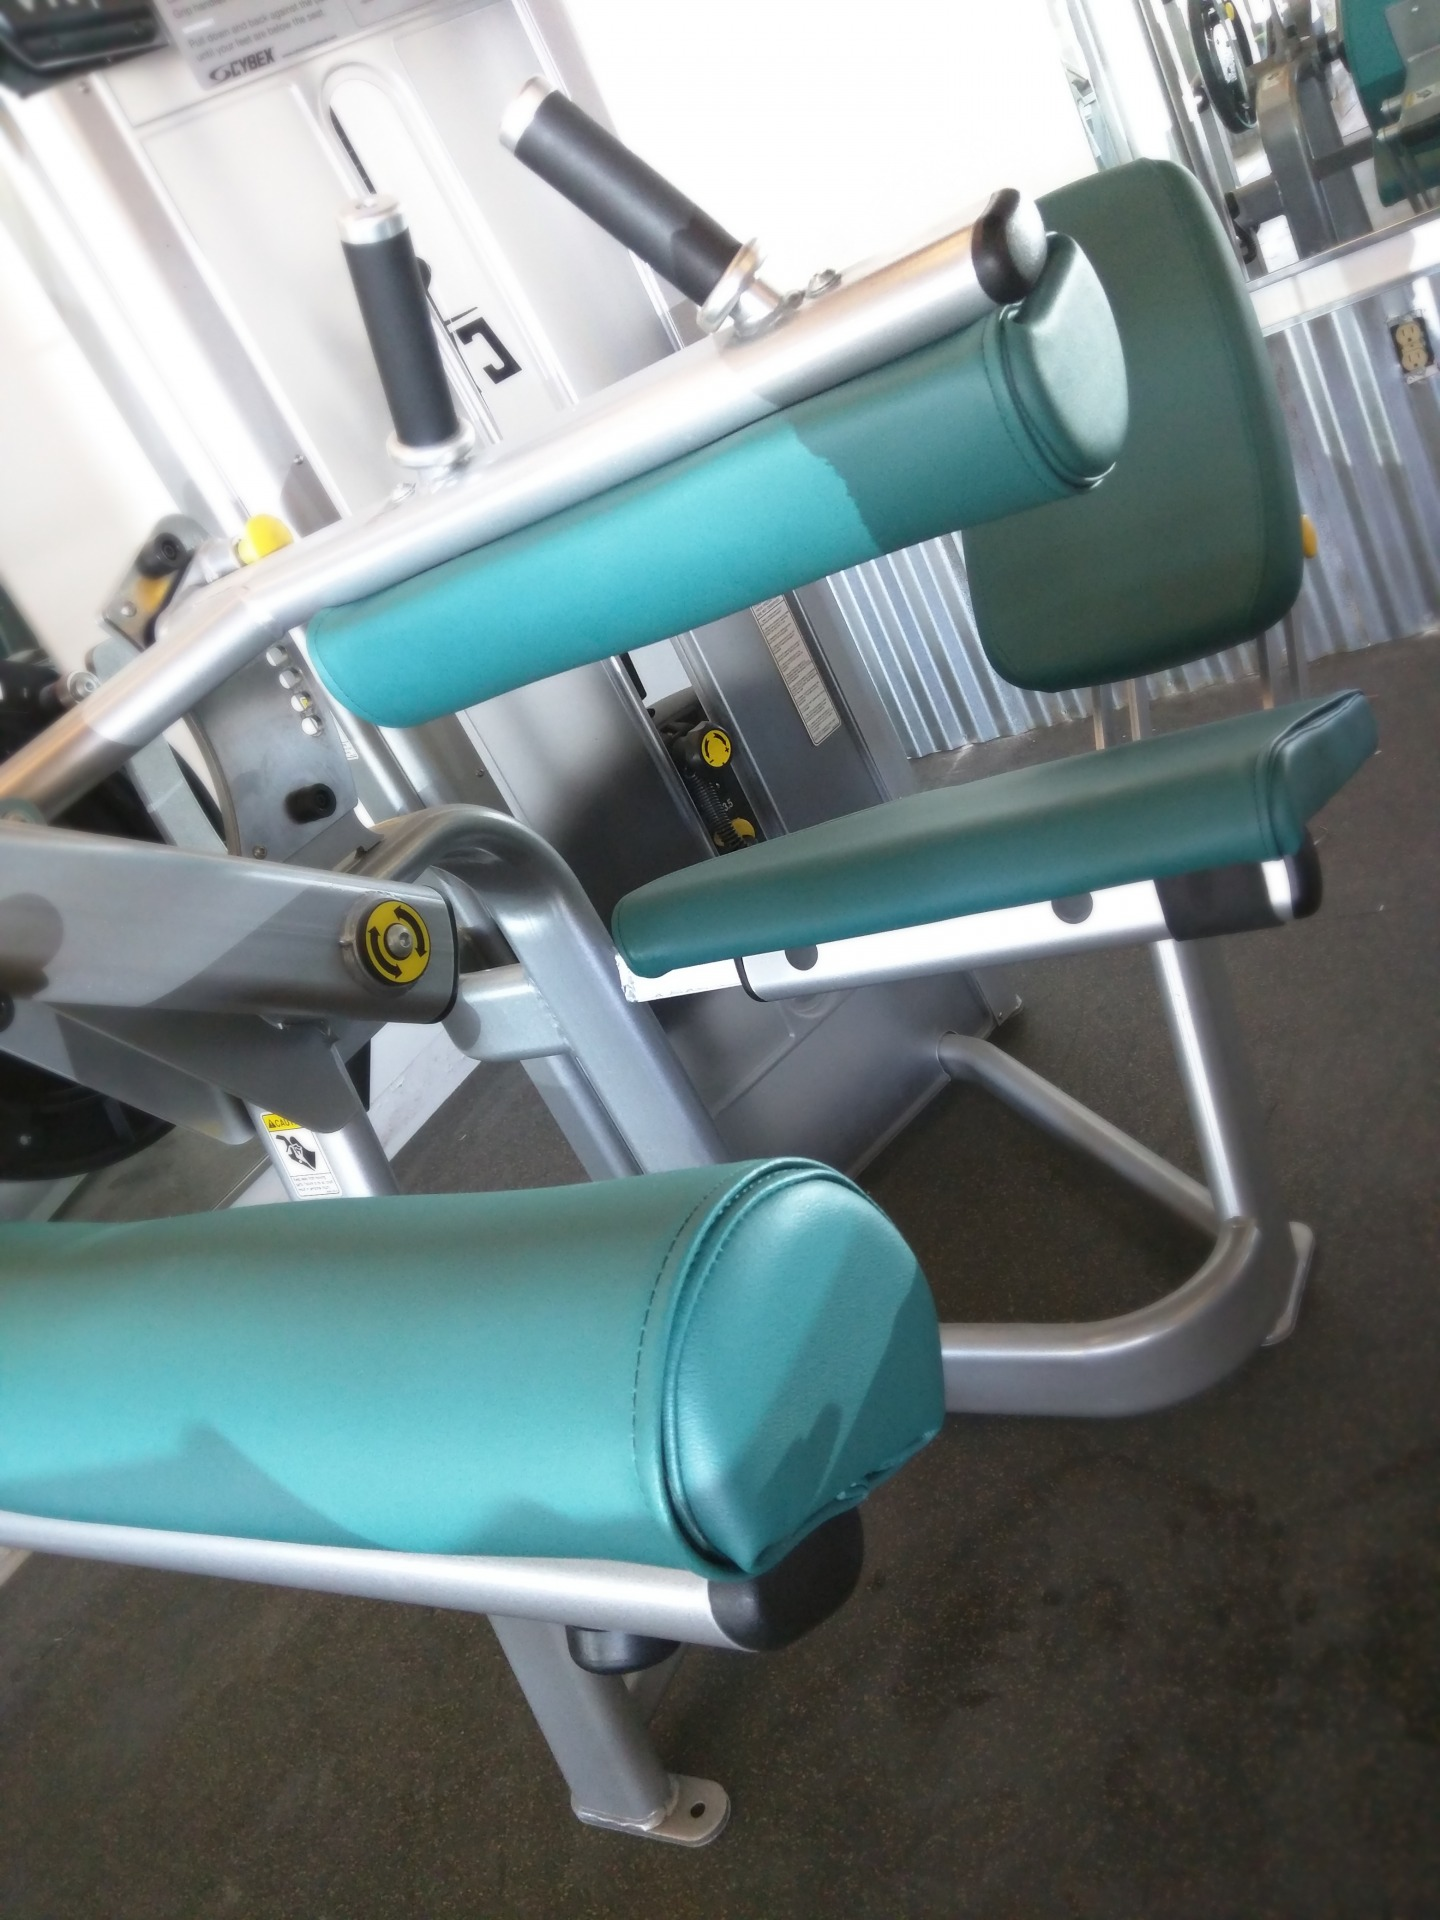 Cybex Leg Curl Fitness Equipment Reupholstered in BoltaSport Olympus Grotto